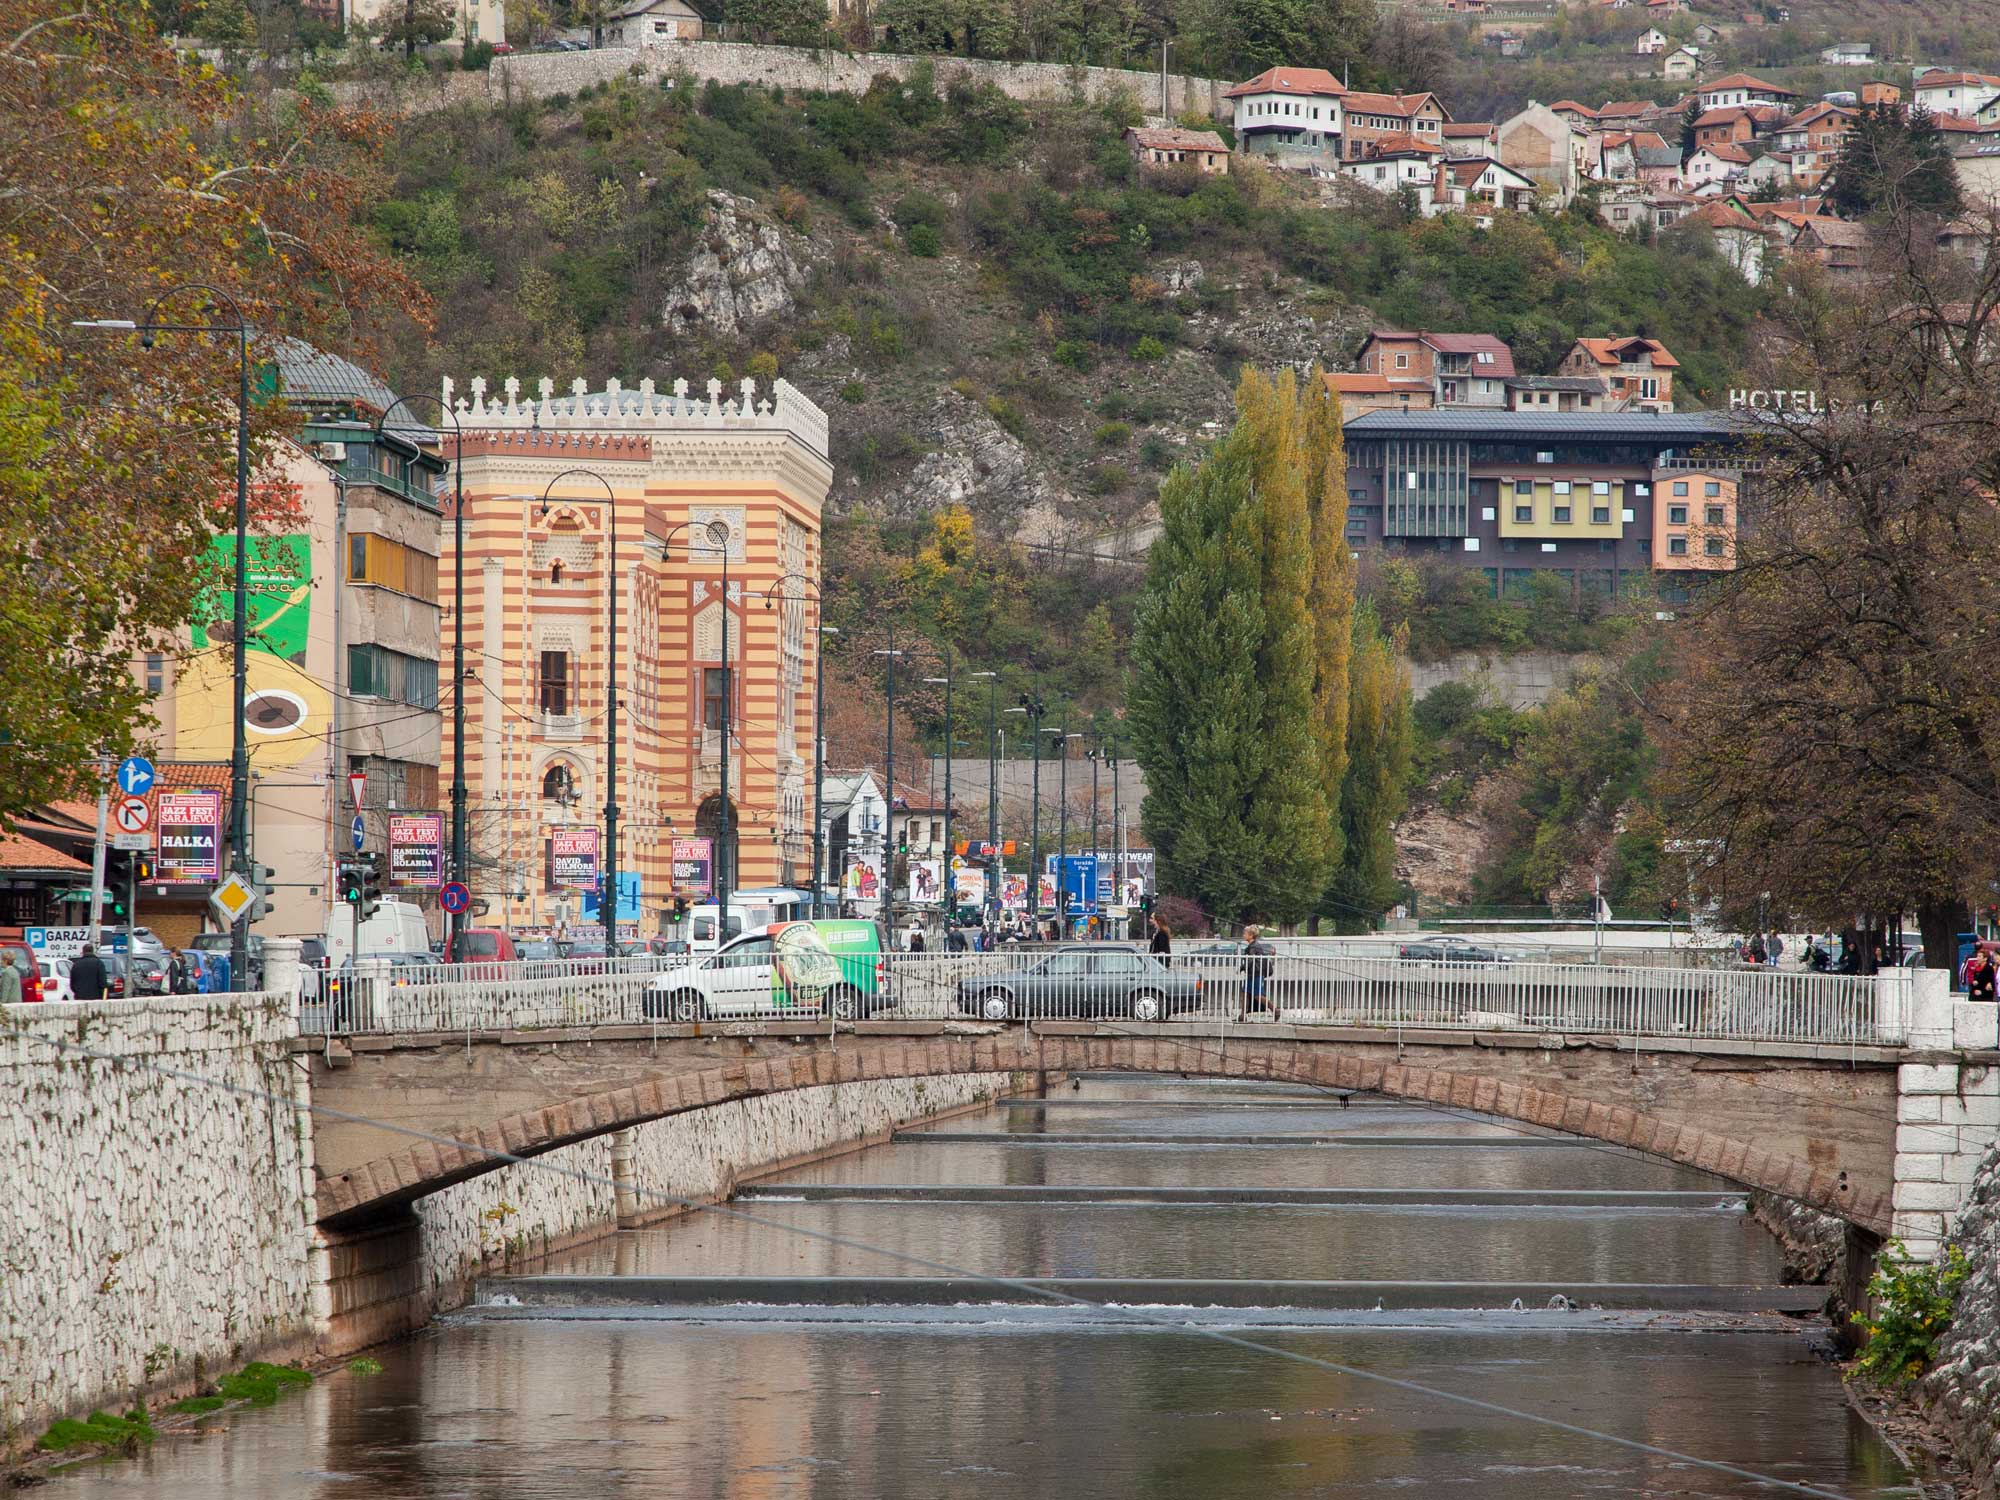 A view of Sarajevo with a bridge in the foreground.